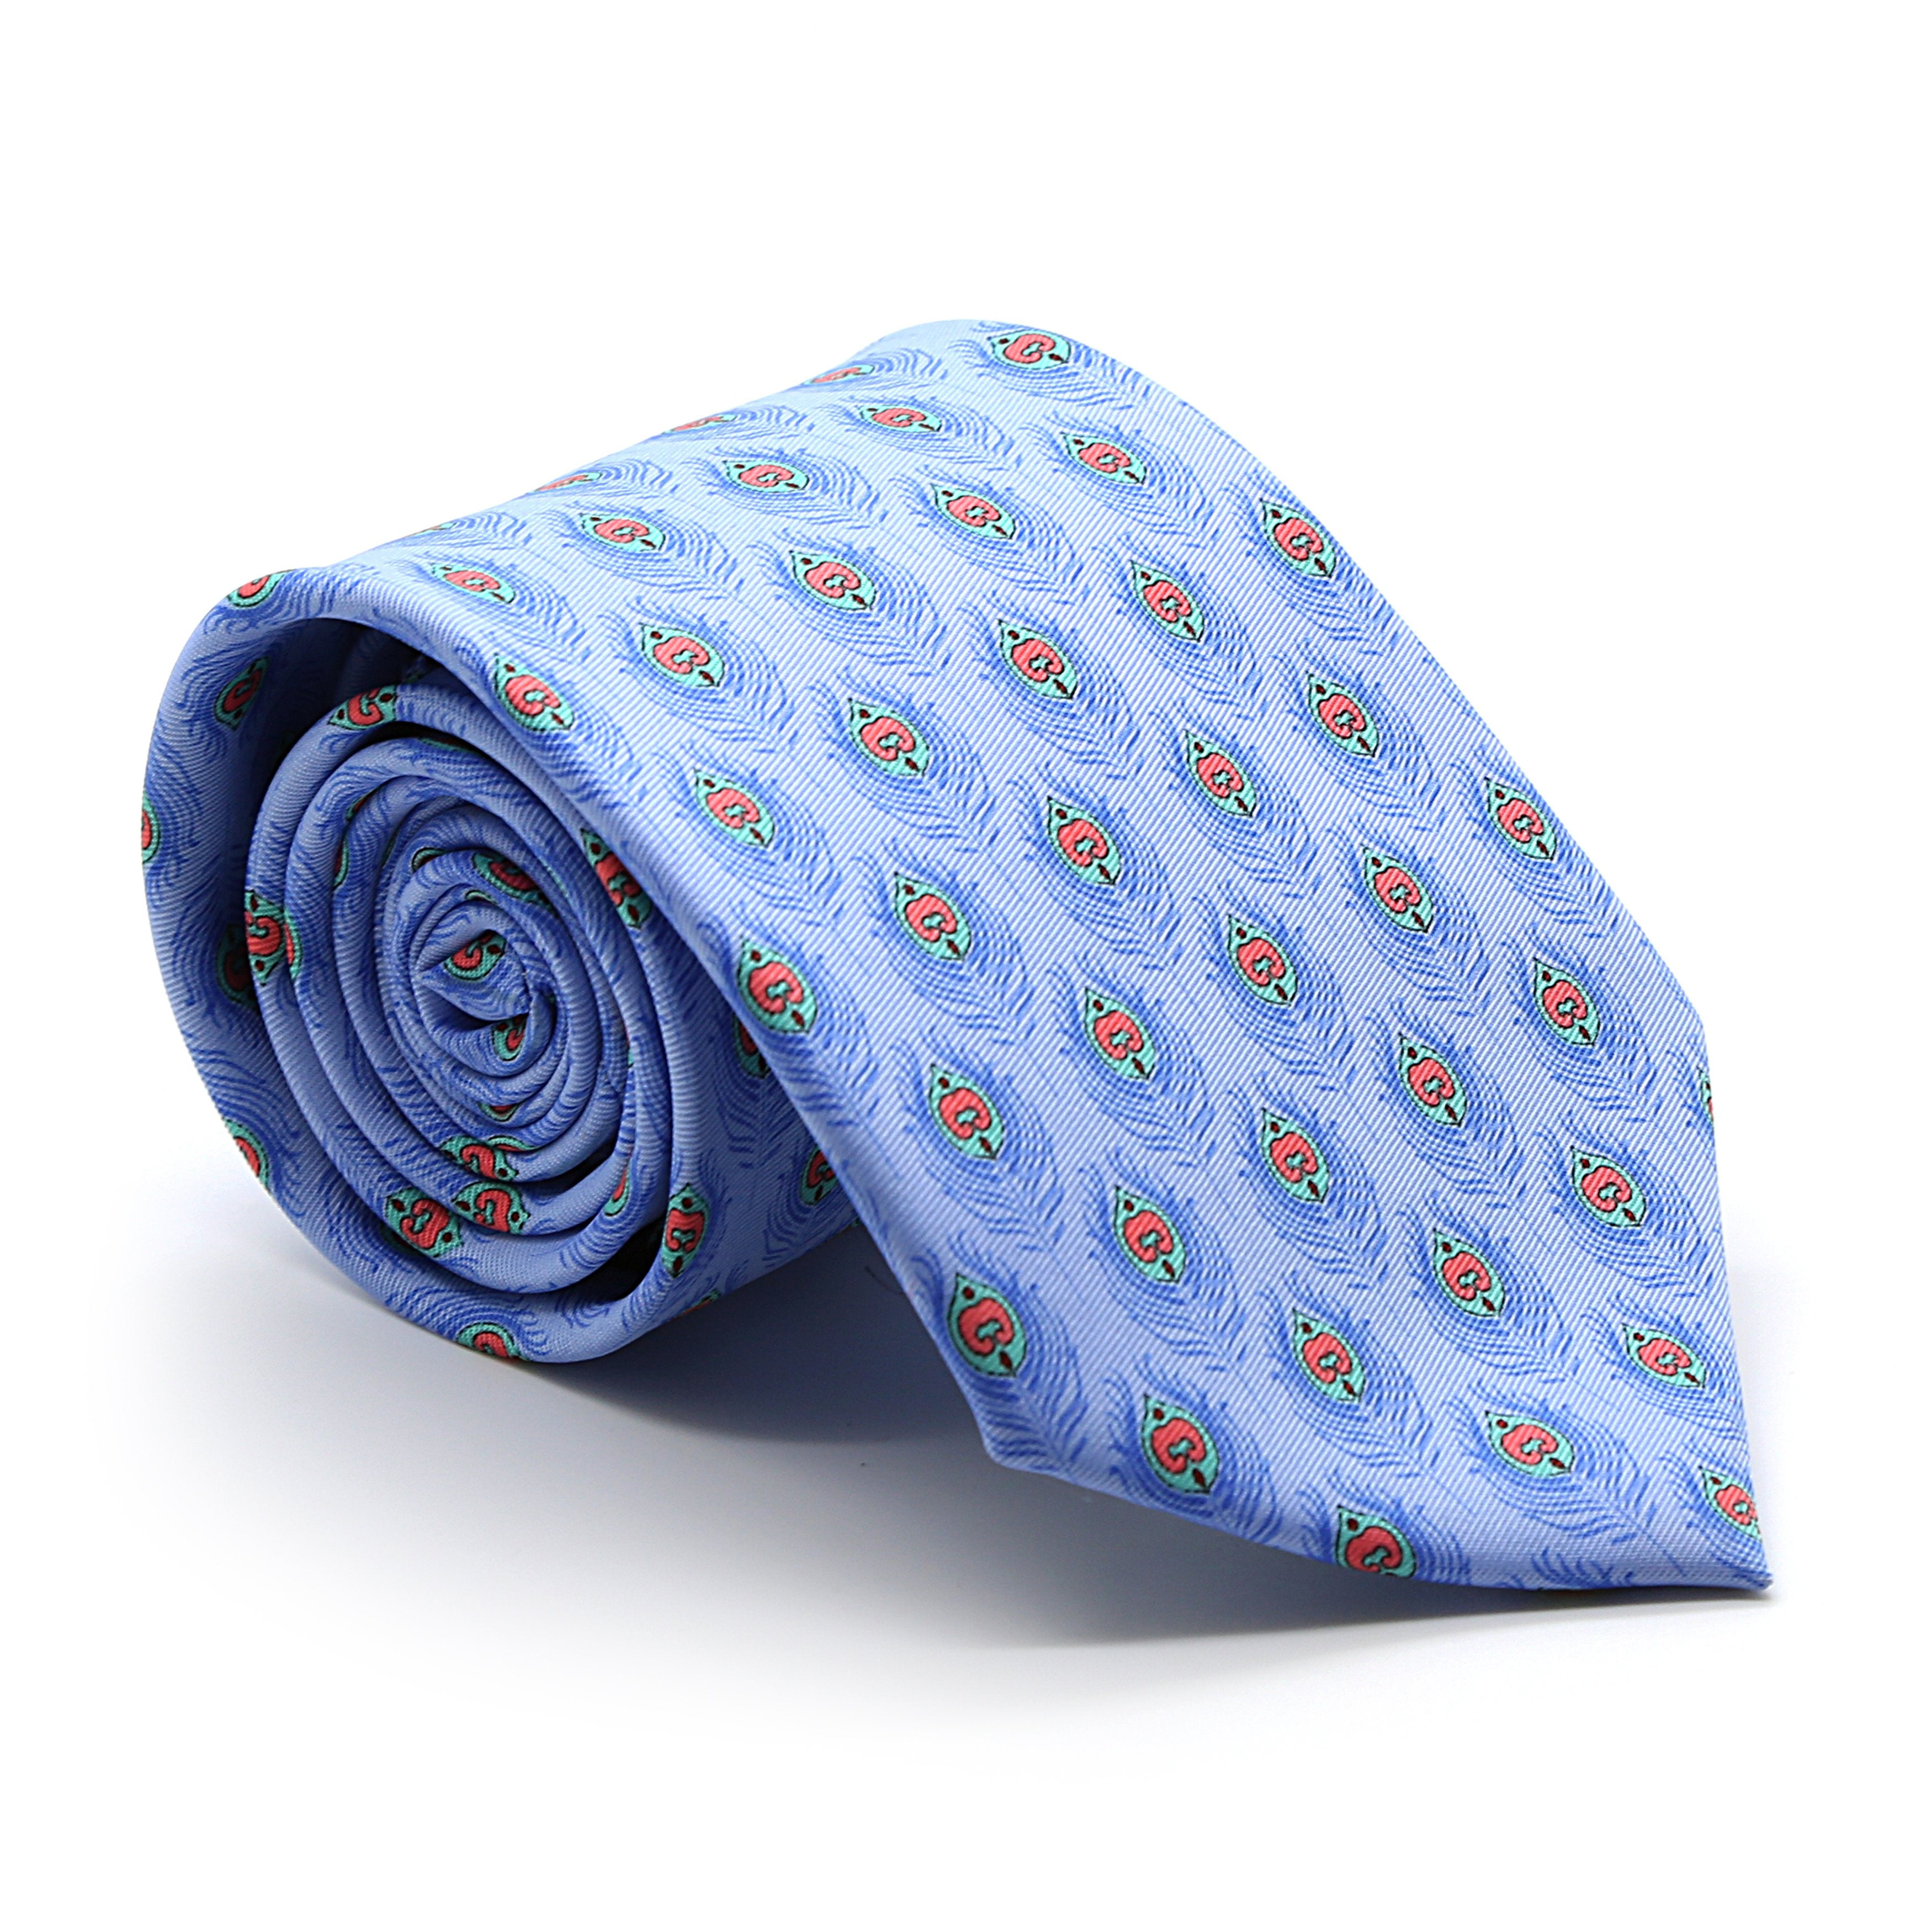 FHY INC blue feather print tie